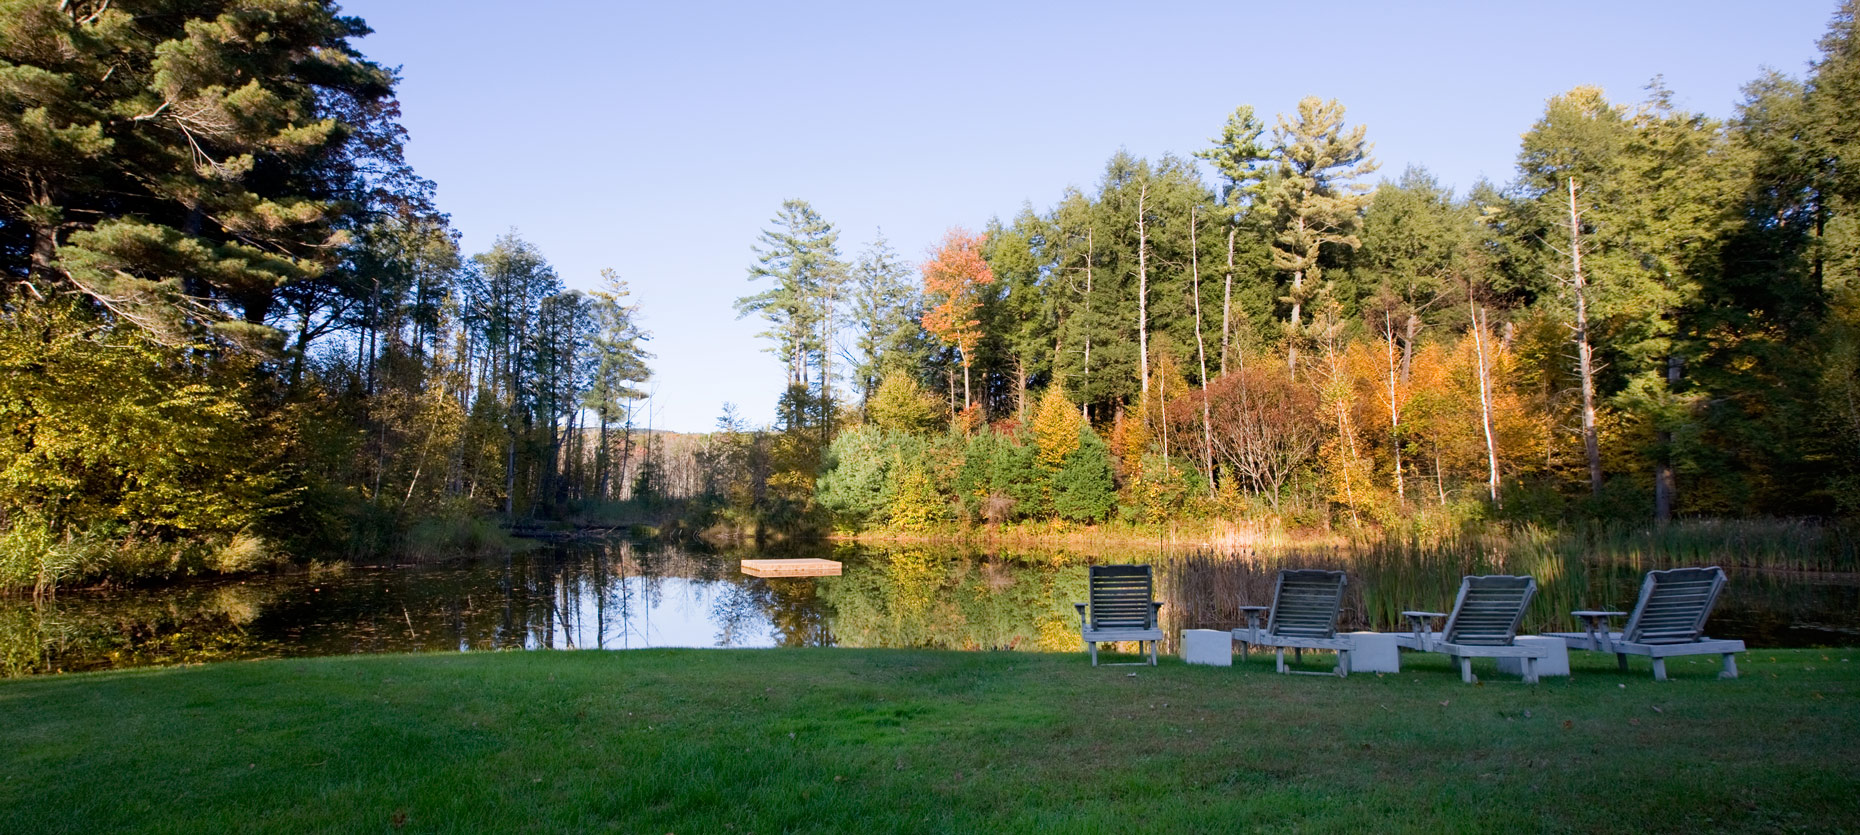 Upstate Private Pond in Fall